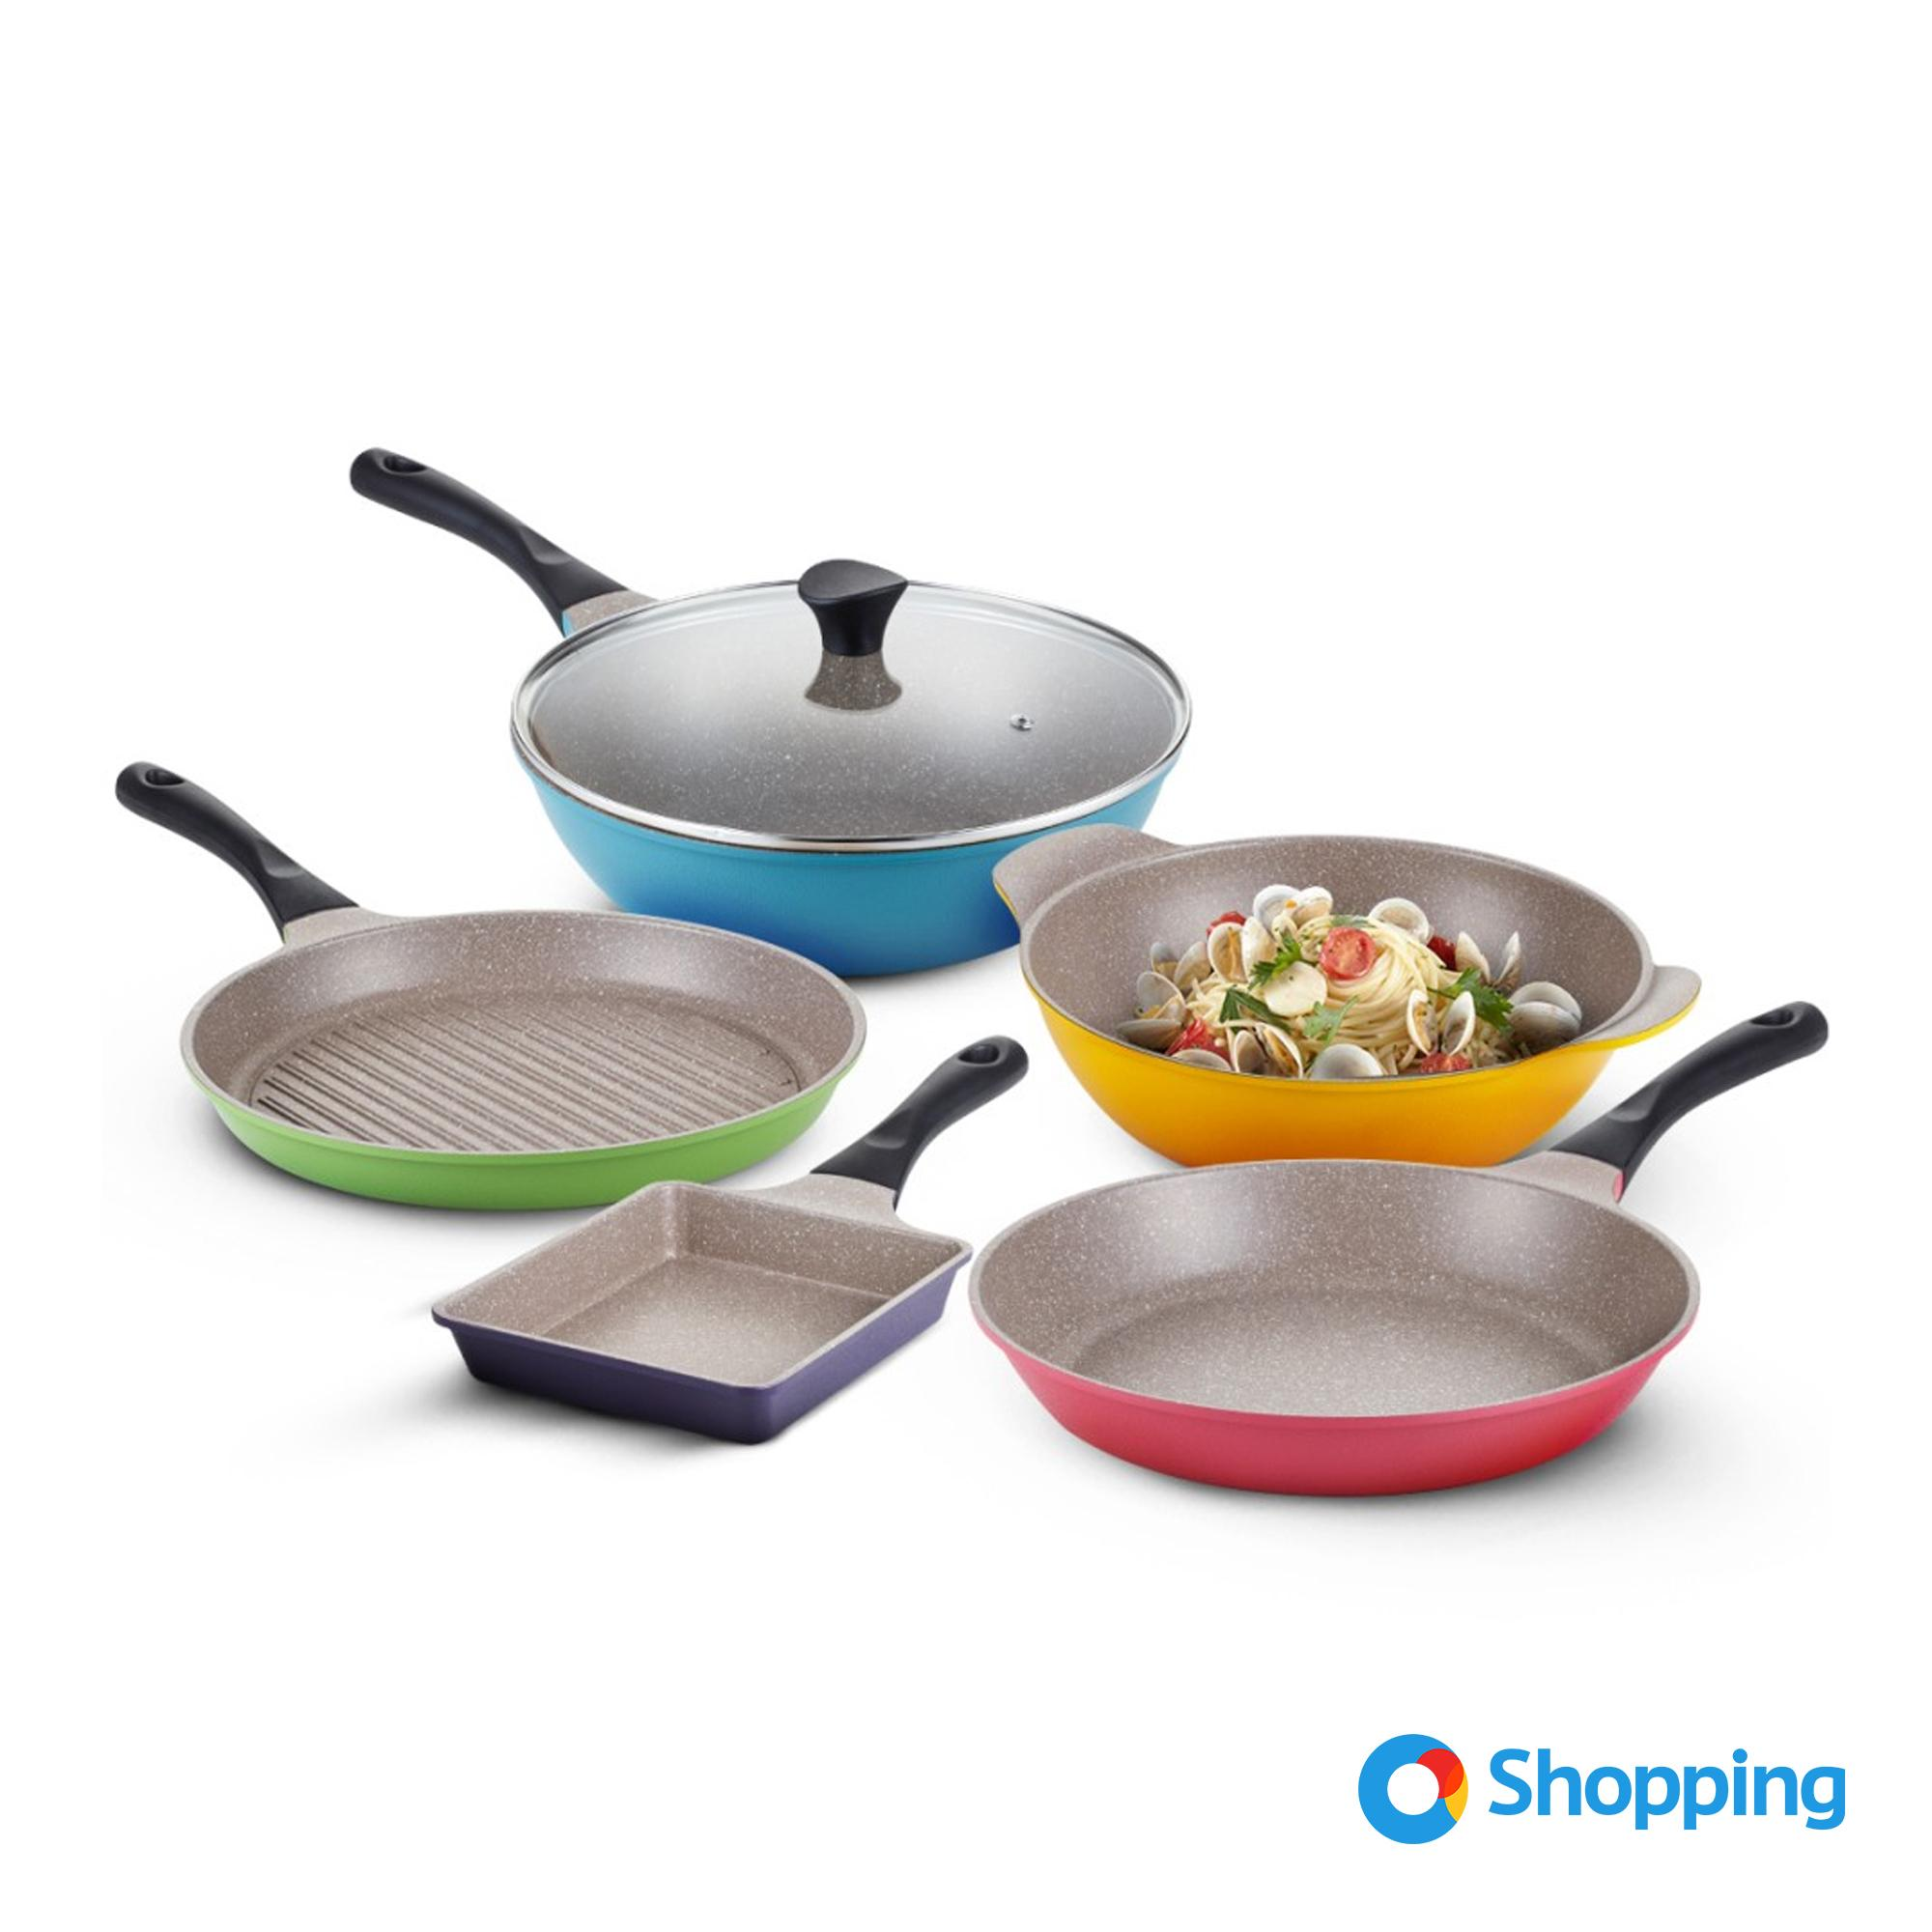 Cookware Set for sale - Cooking Set prices, brands & review in